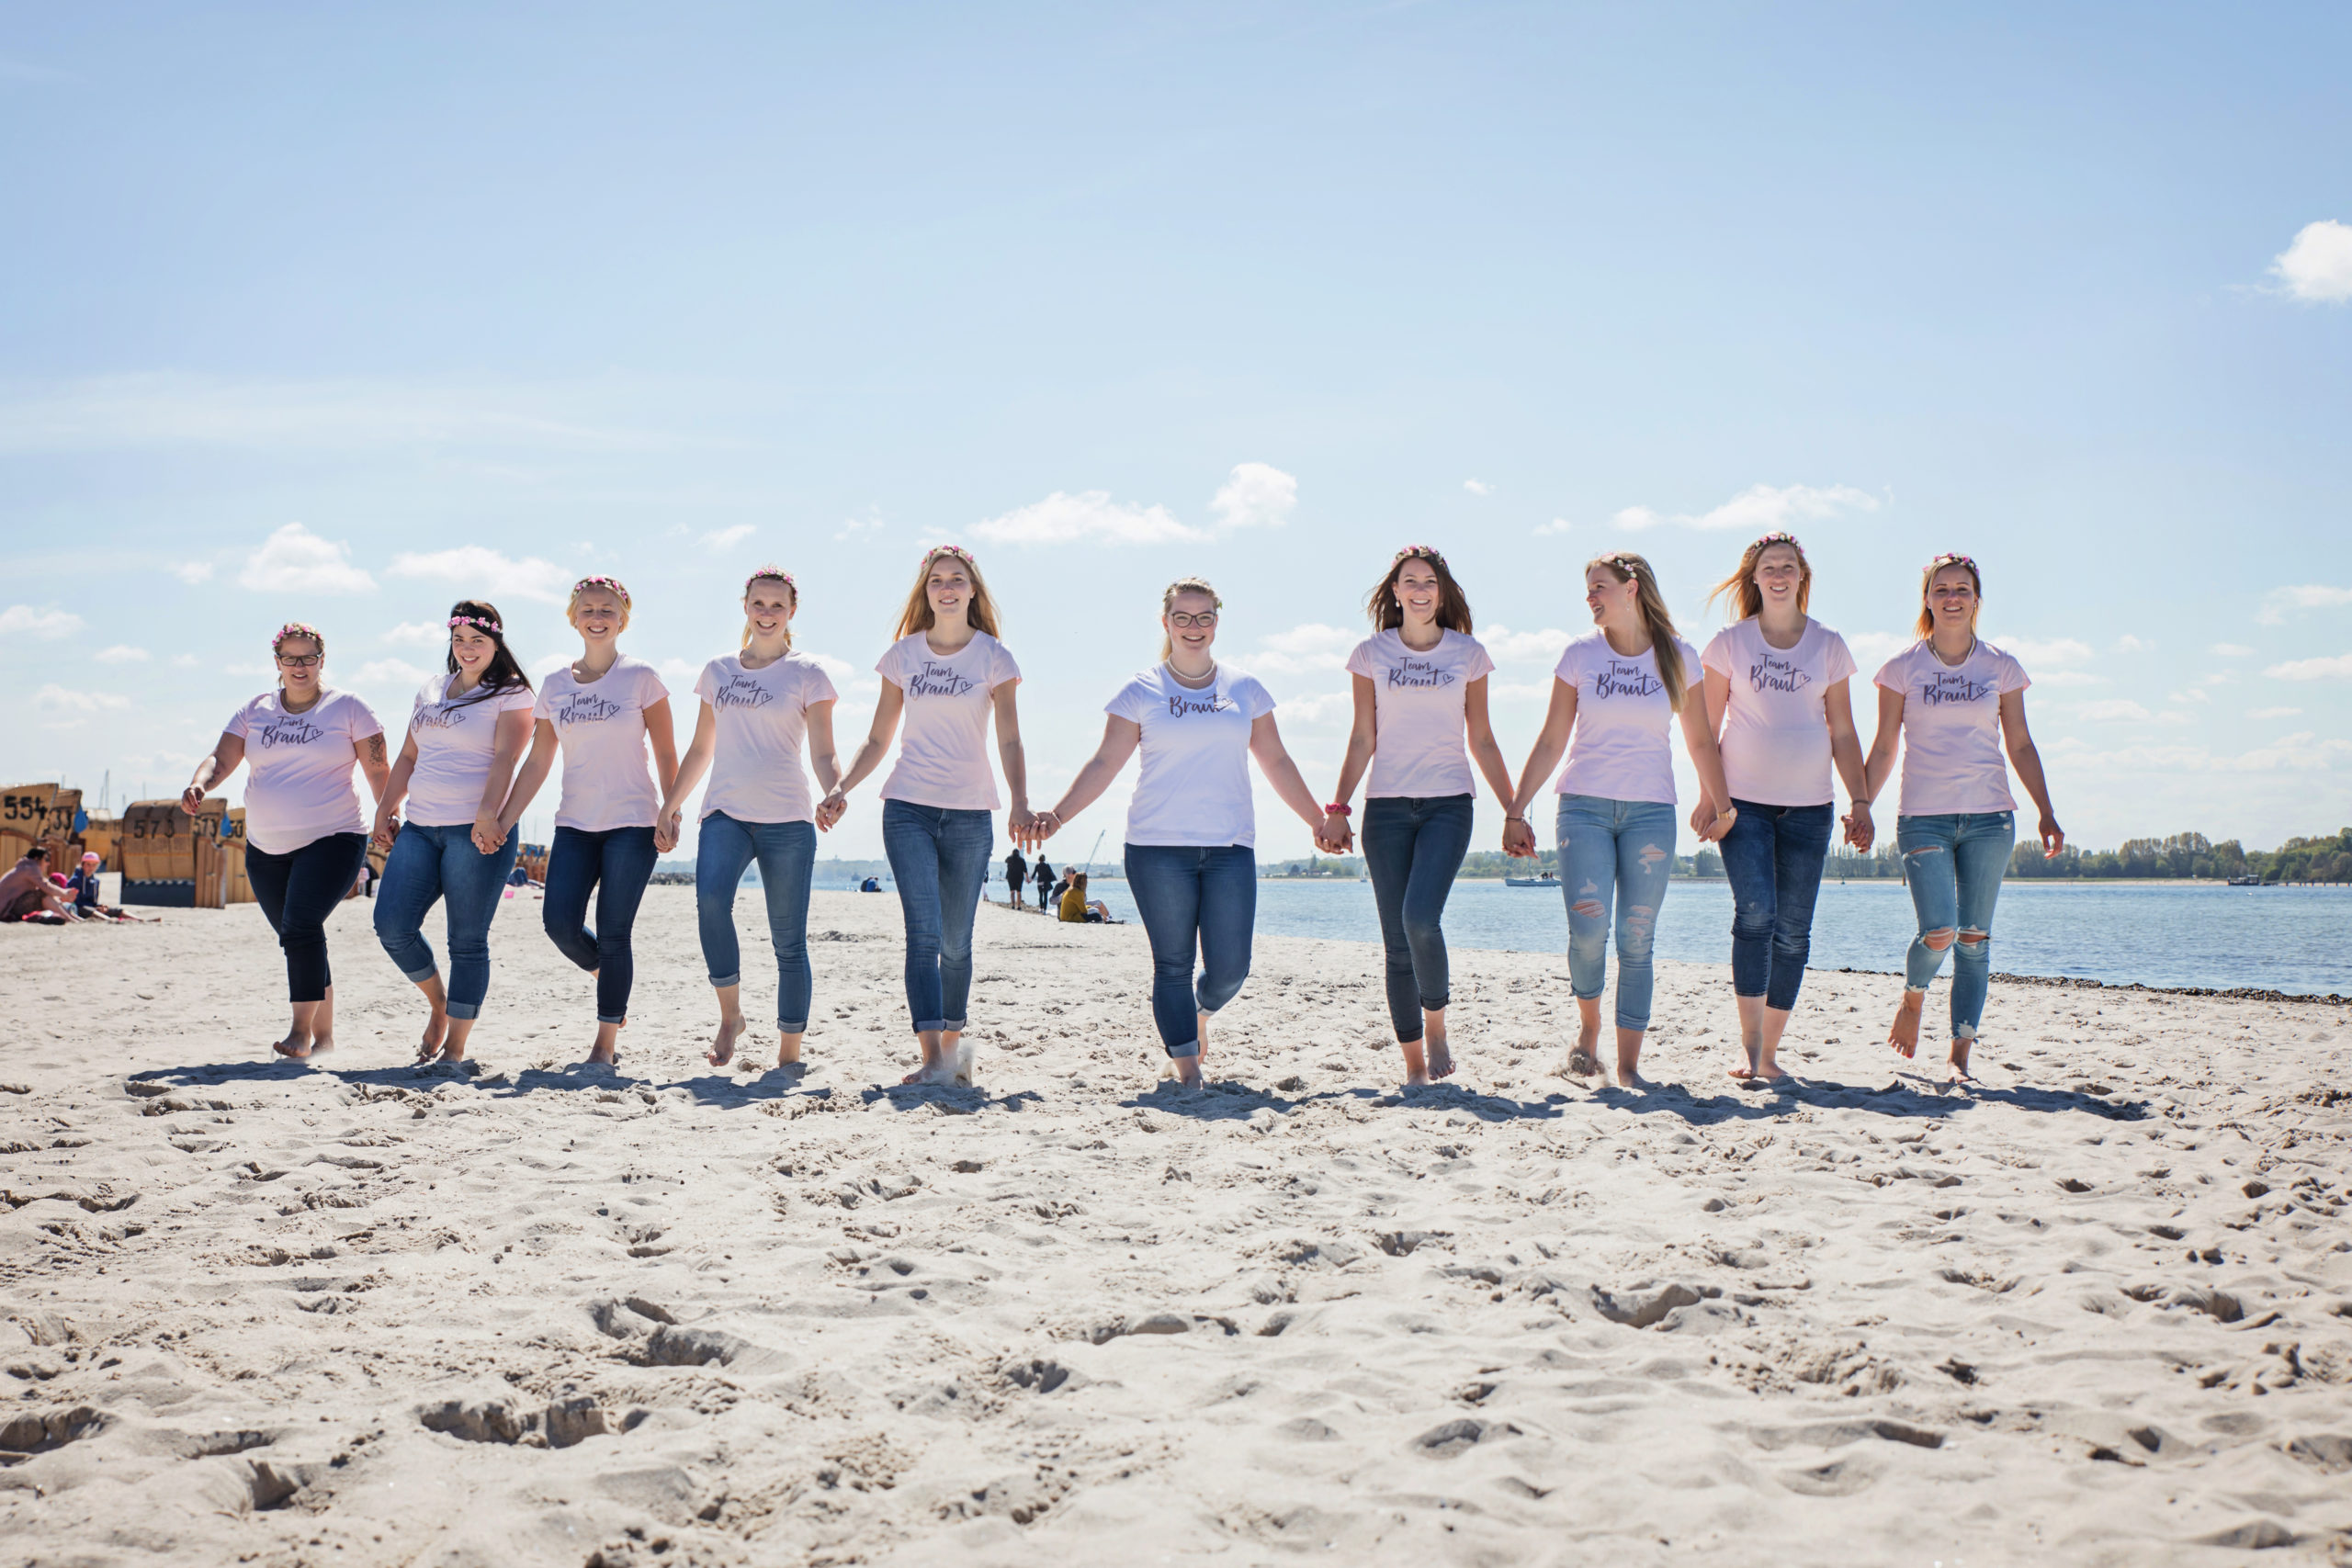 JGA Fotoshooting am Strand